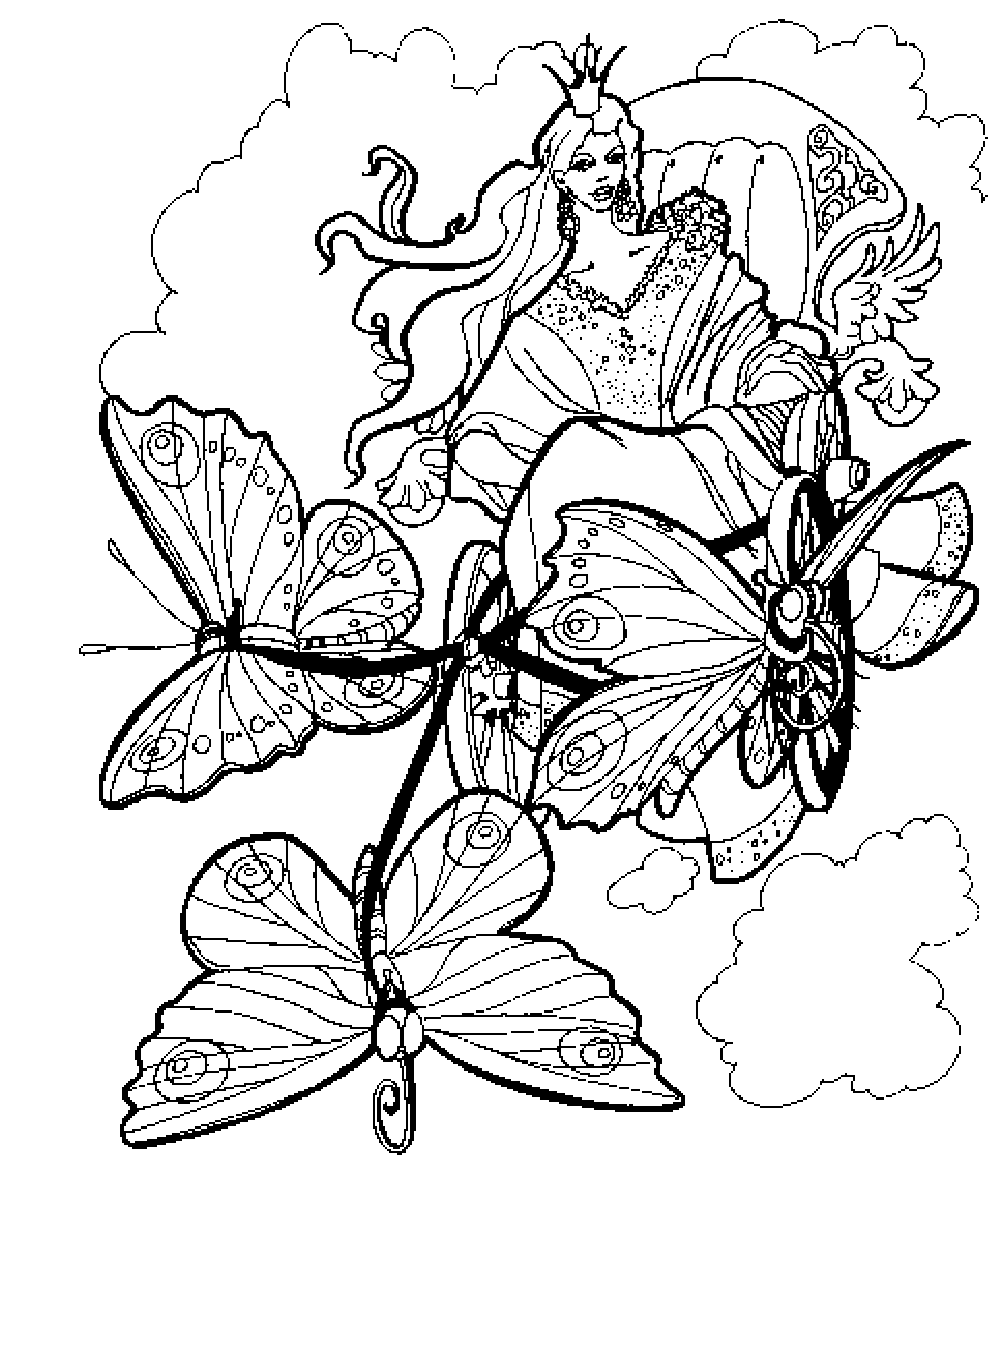 free colouring pages to print for adults cute coloring pages best coloring pages for kids colouring adults print for pages to free